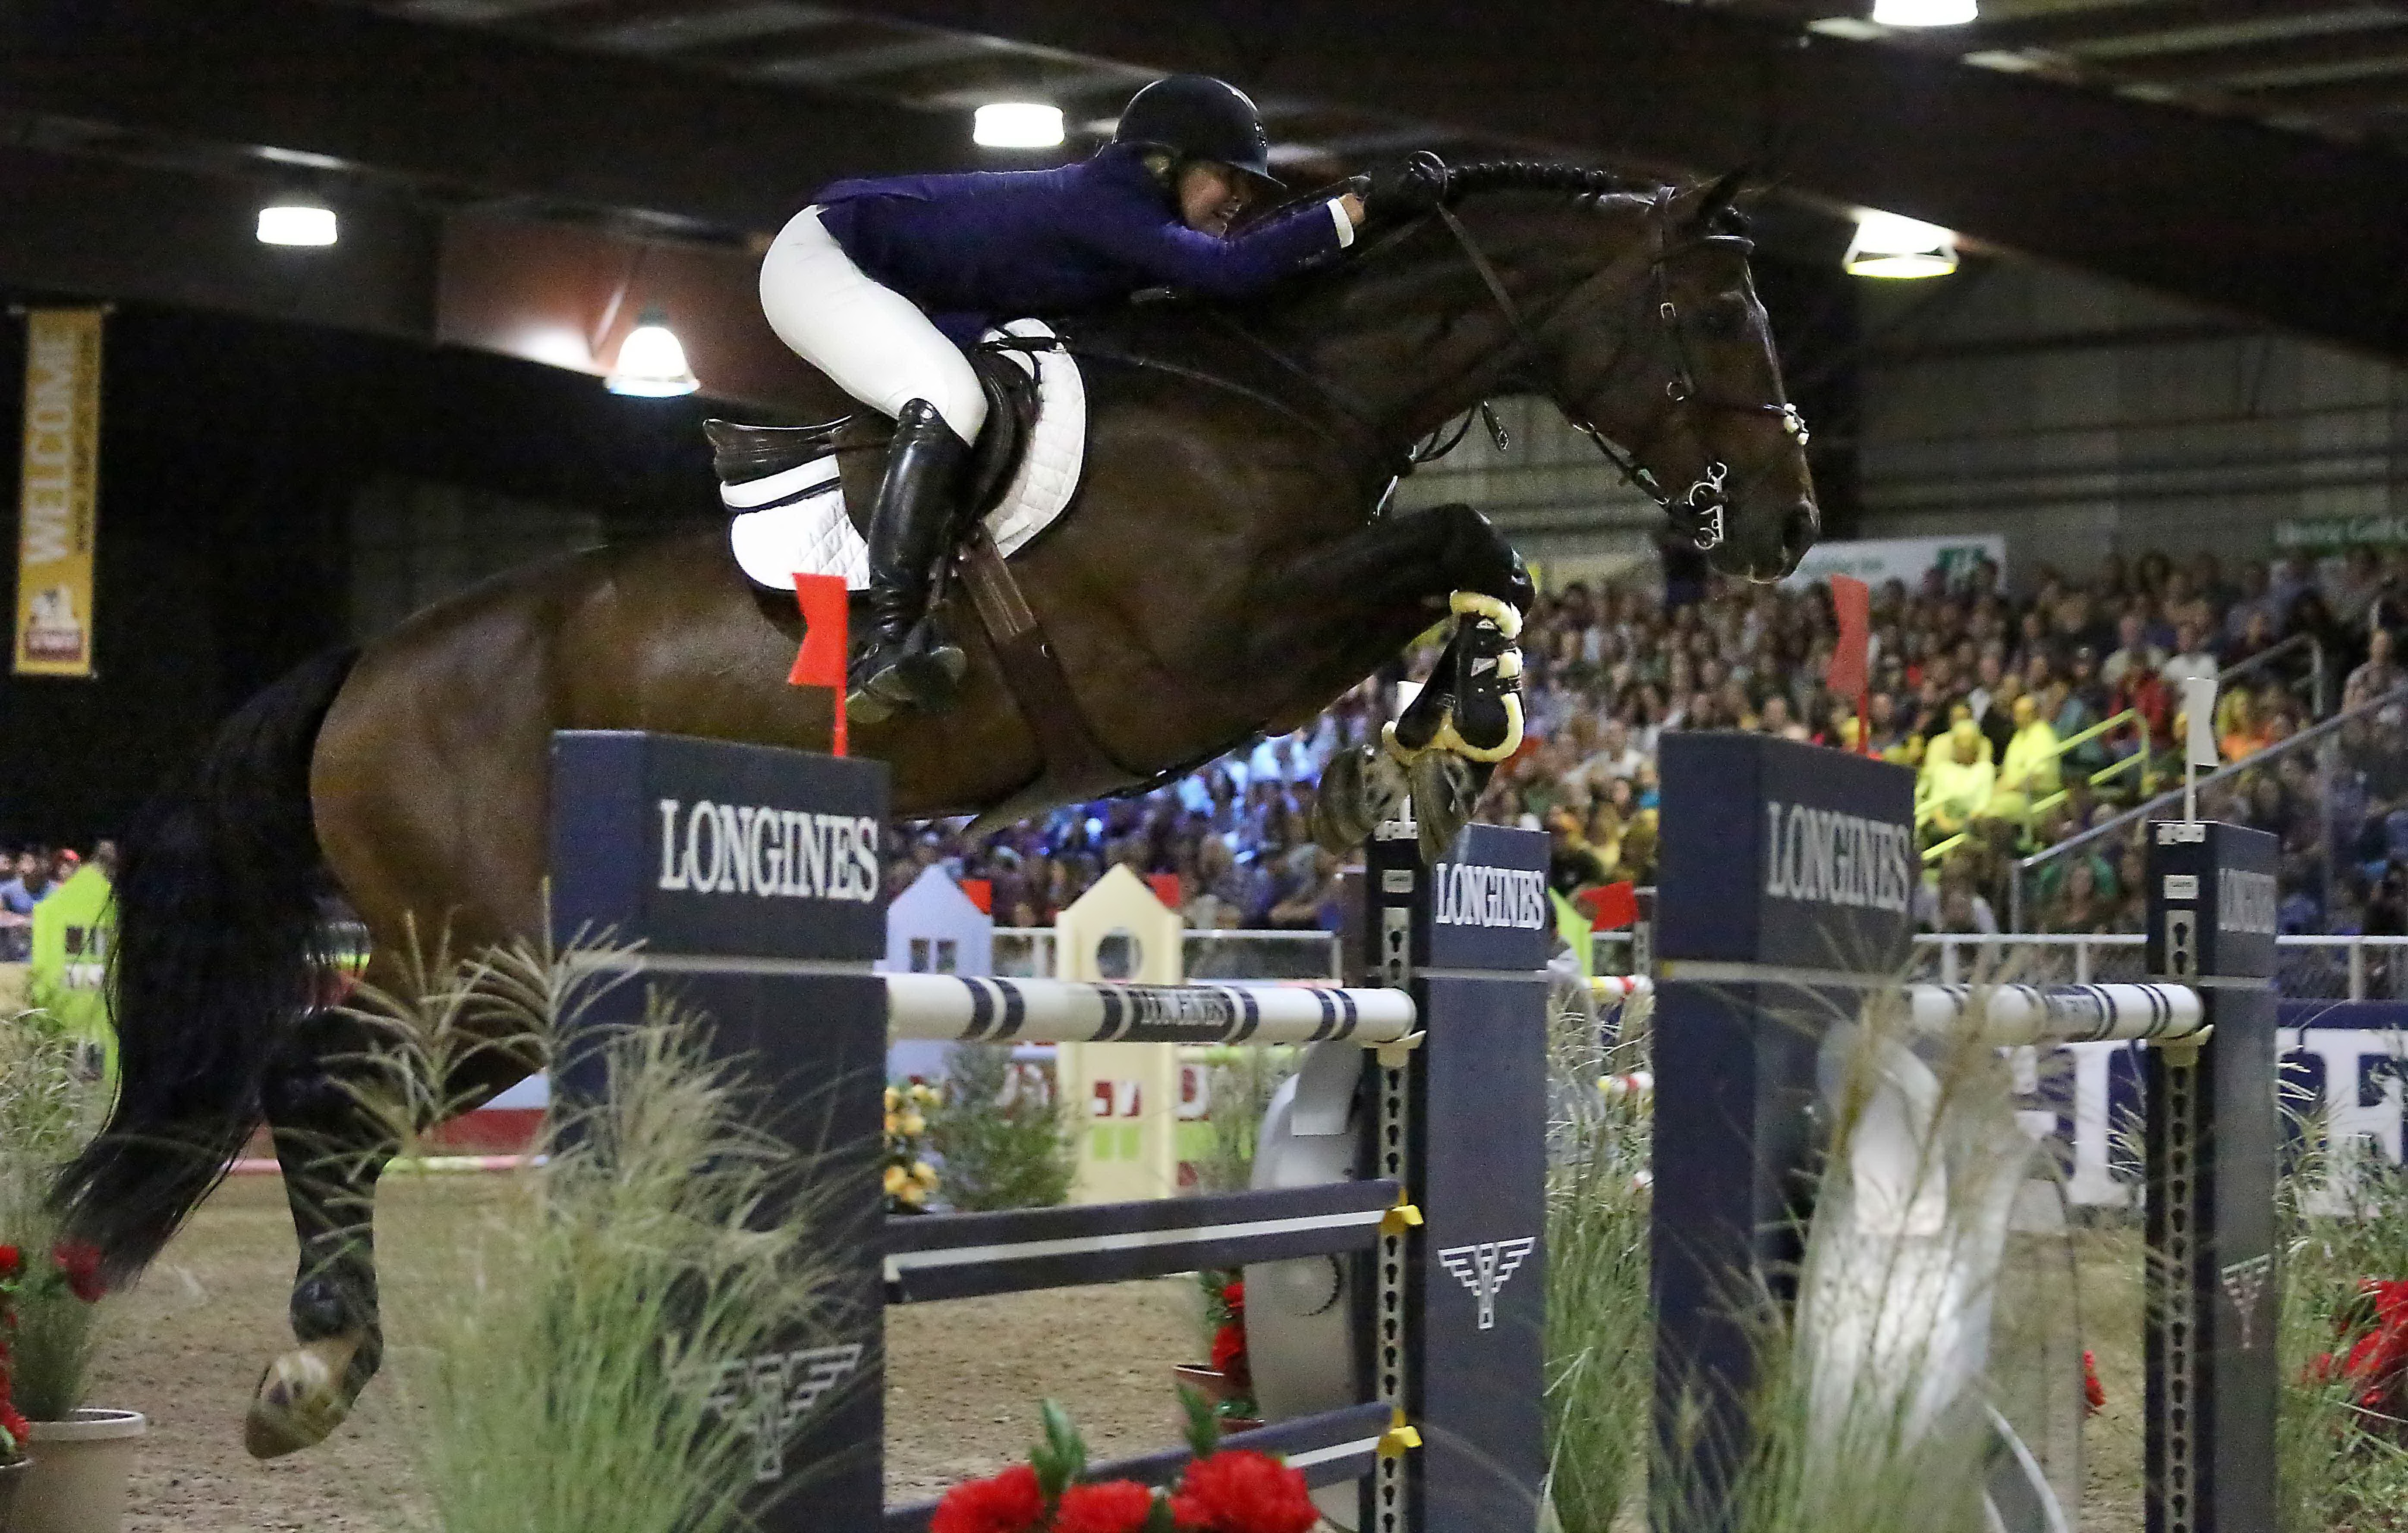 The United States' Audrey Coulter and Capital Colnardo jump to victory in the $100,000 Longines FEI World Cup™ Jumping Sacramento, Ca. (USA) © FEI/Kristin Lee